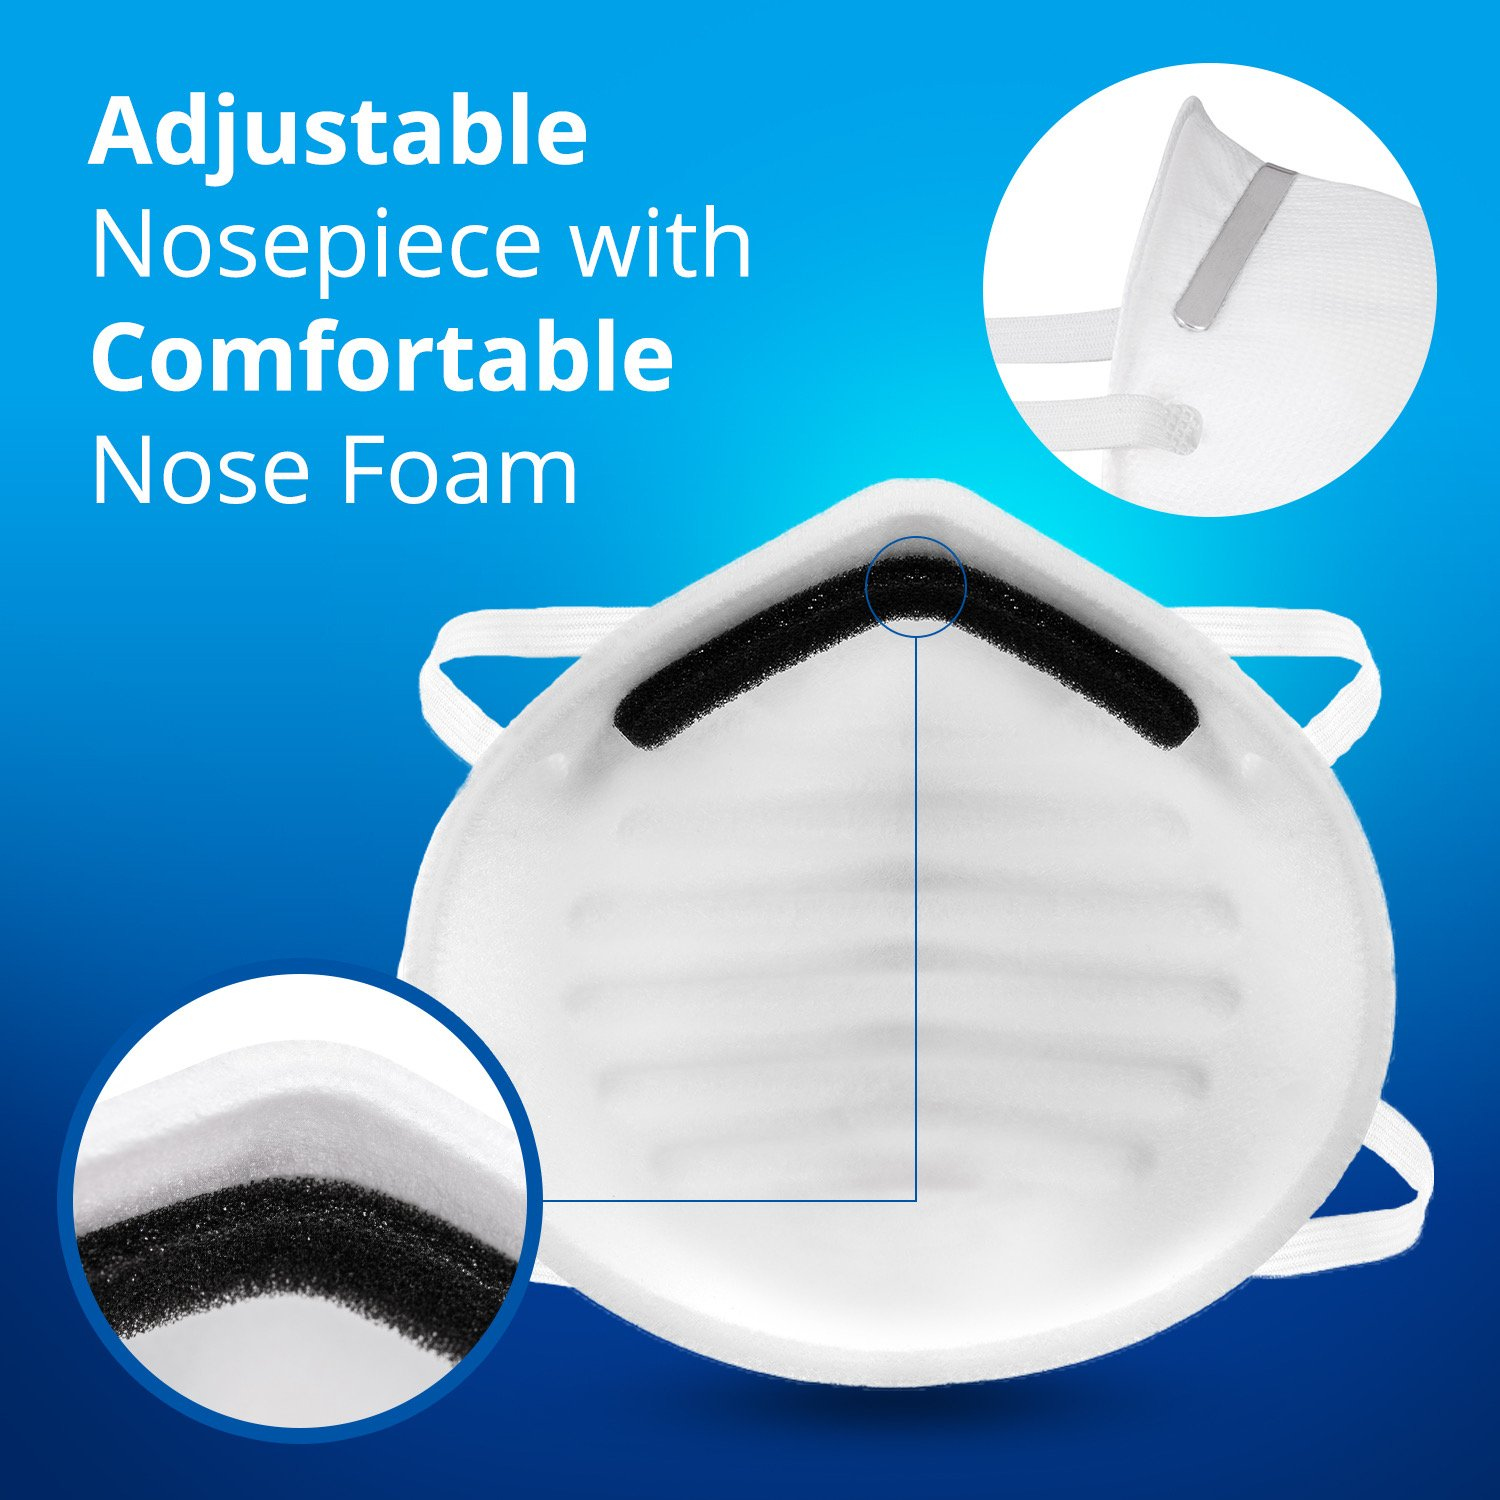 Disposable Dust Masks for face - NIOSH Certified - Safety N95 Particulate Respirator Mask (20 pack) by Protect Life (Image #6)